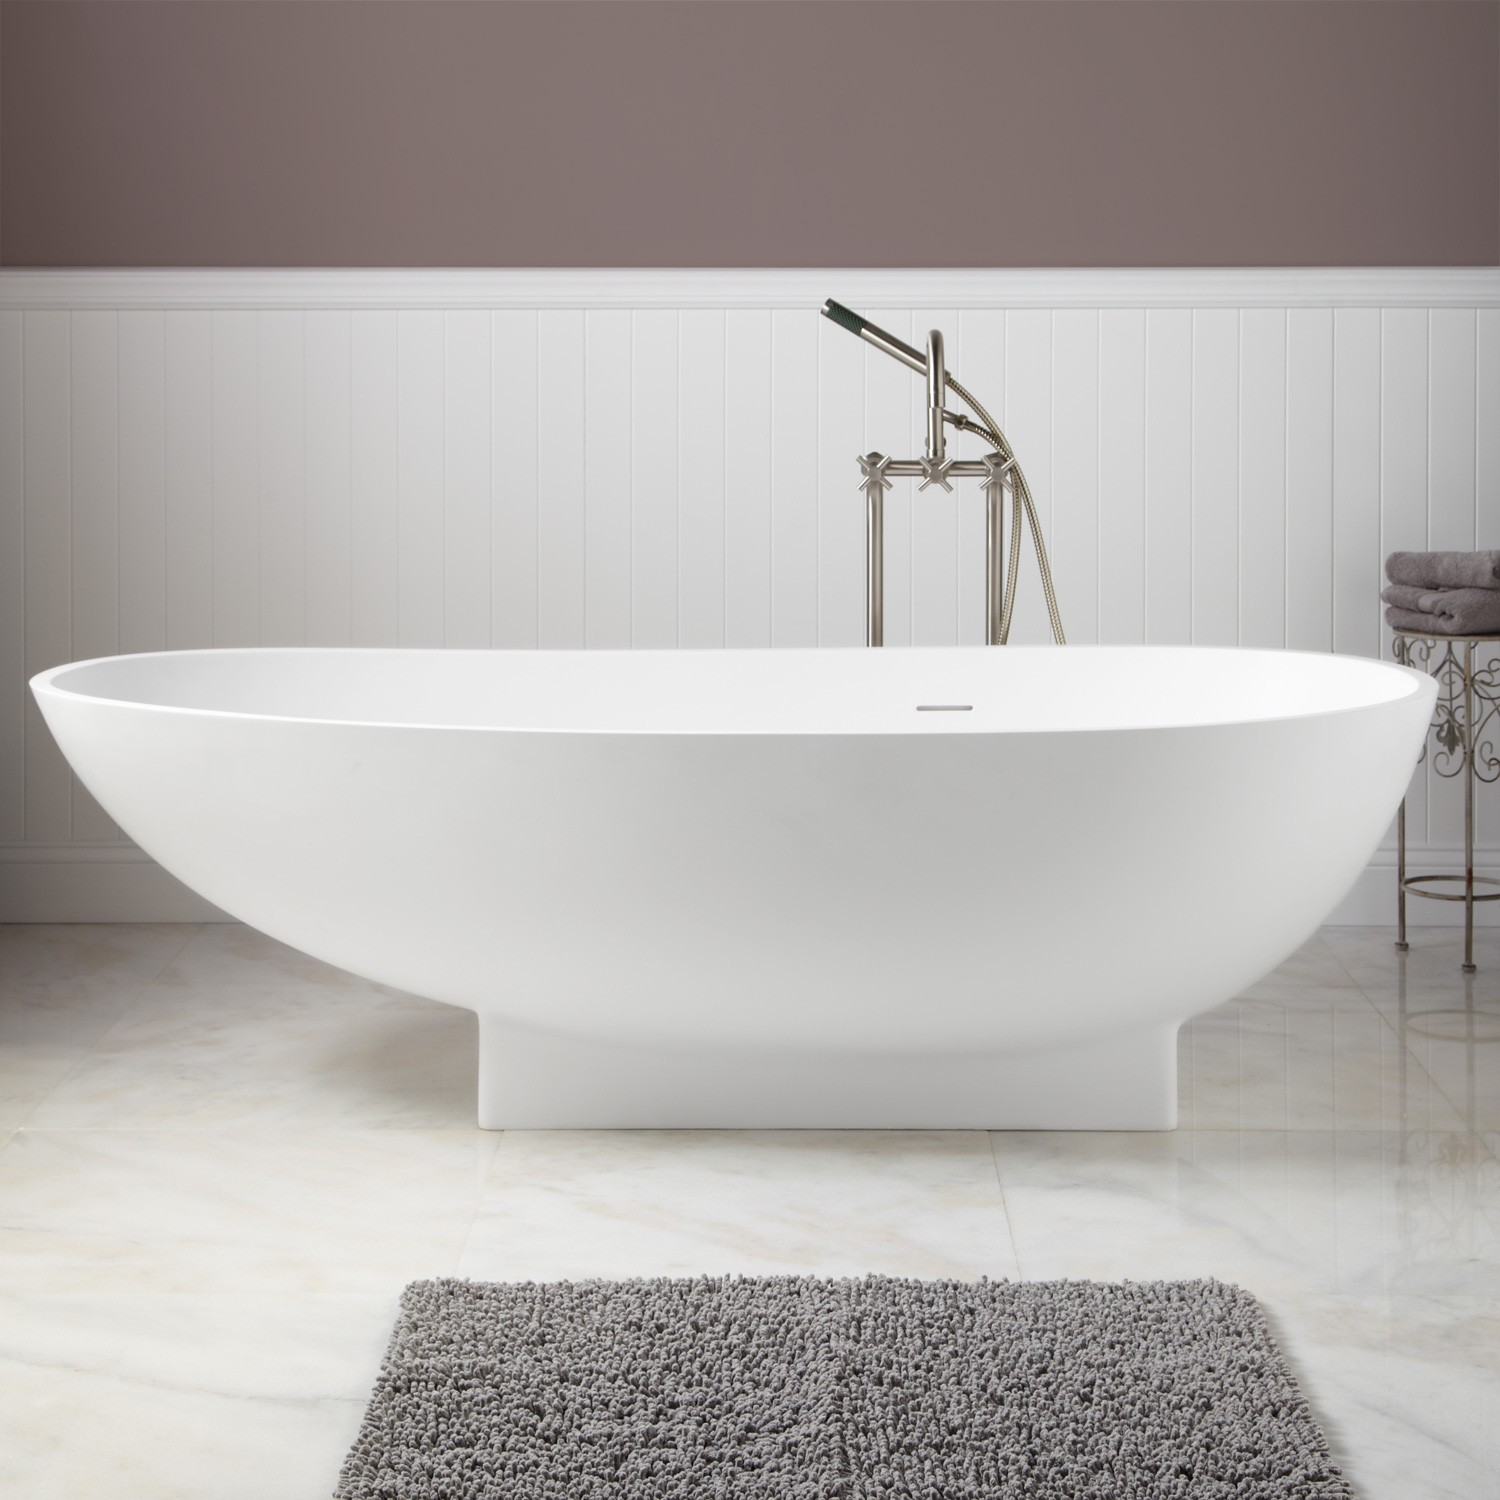 Freestanding bathtubs bliss bath and kitchen for Free standing bath tub